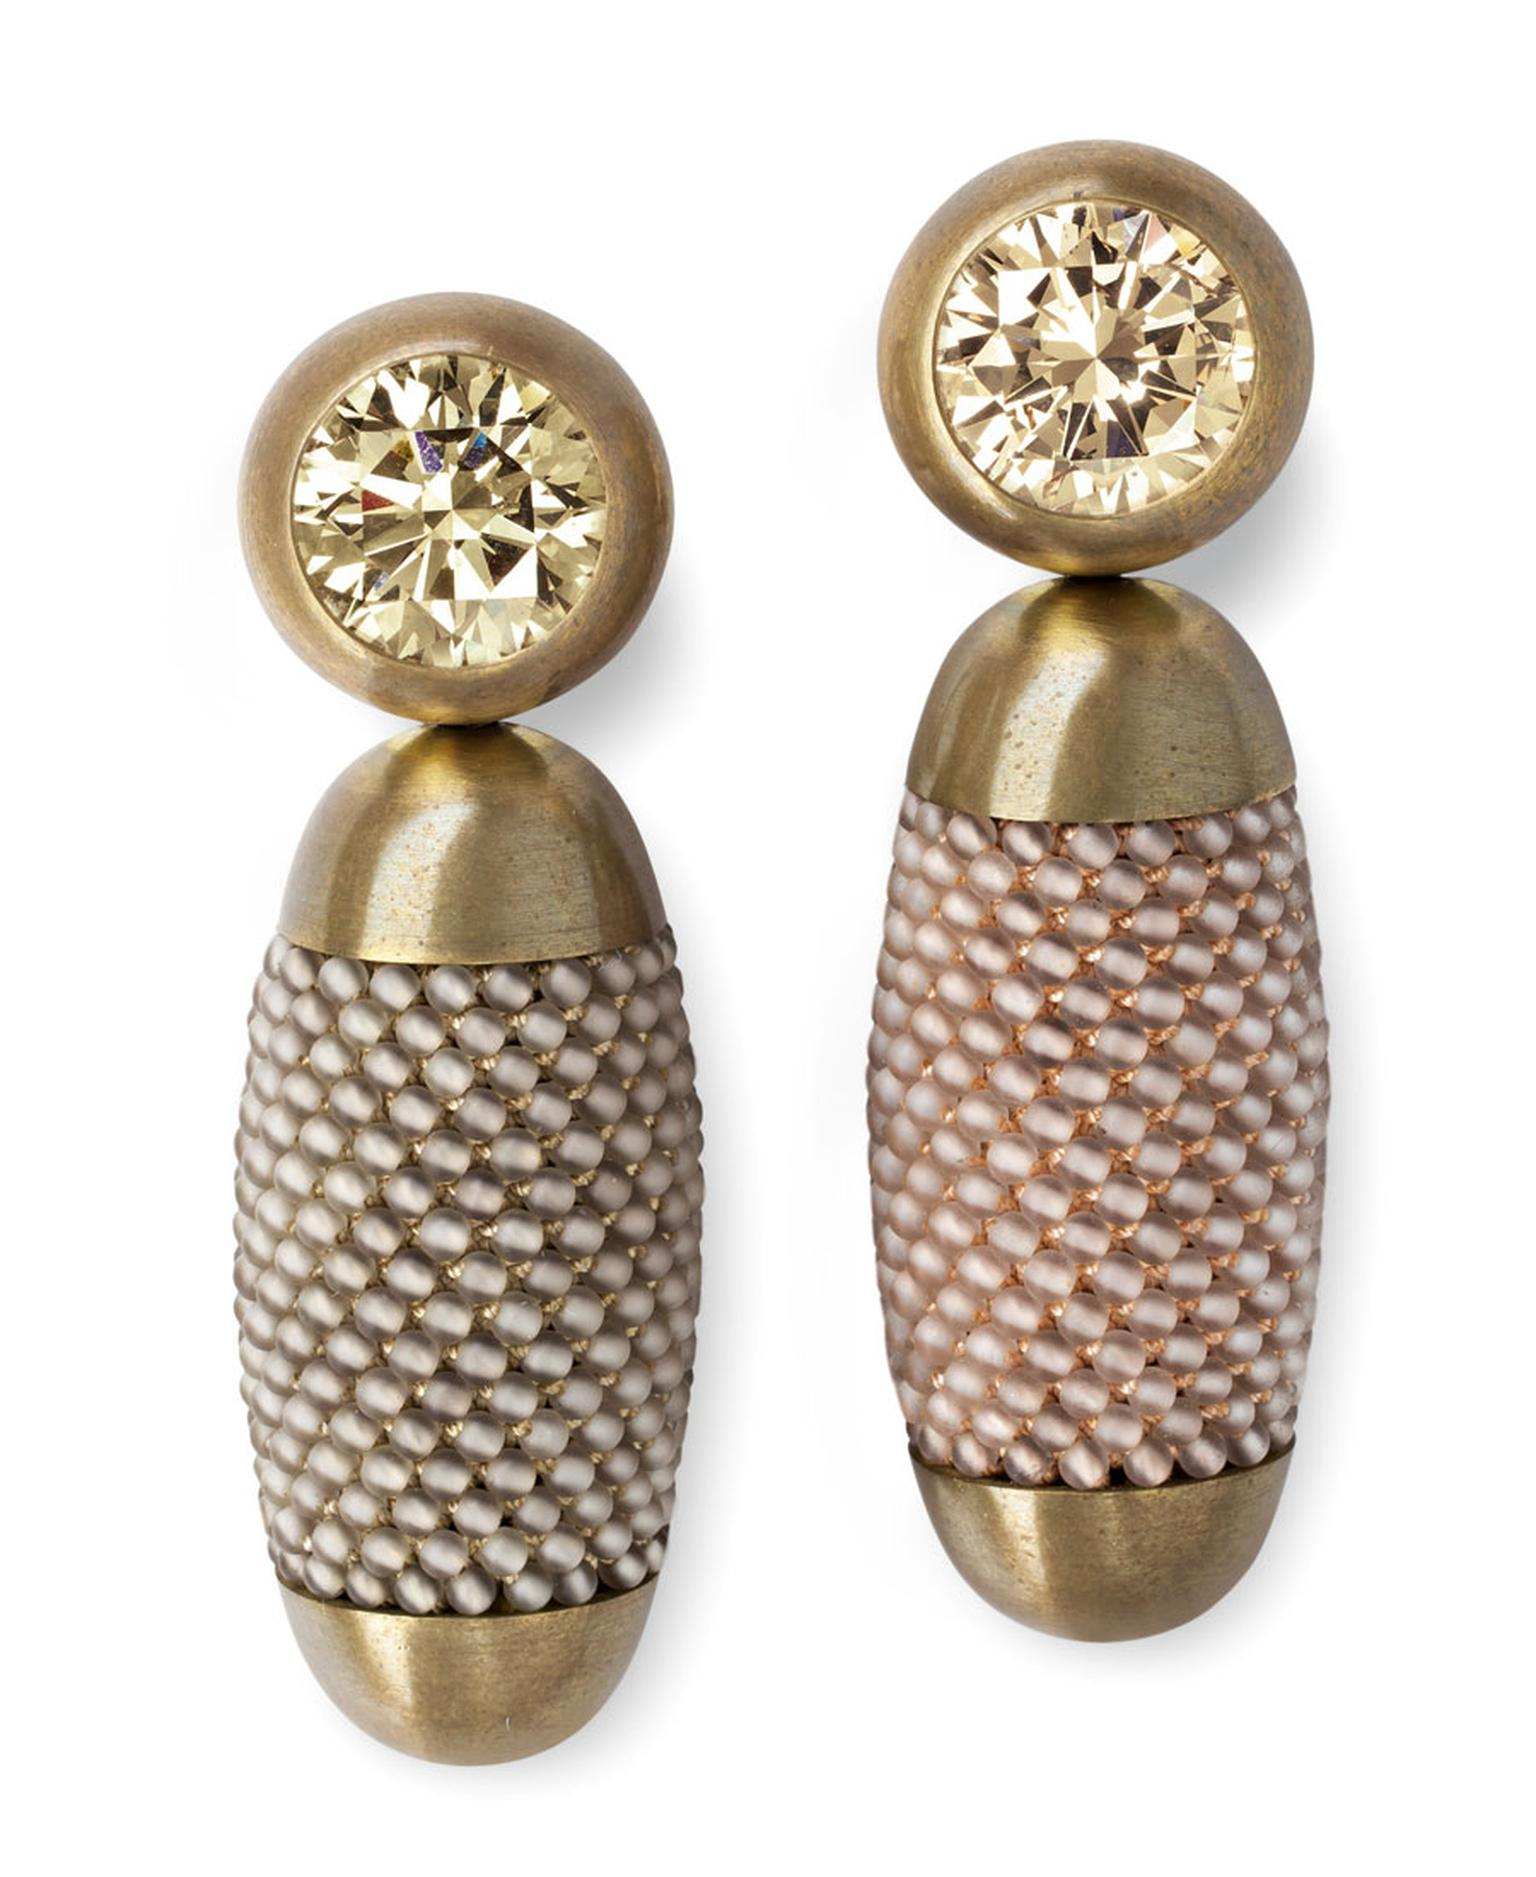 Hemmerle-earrings-brass-white-gold-yellow-brown-diamonds-smoky-quartz-0696